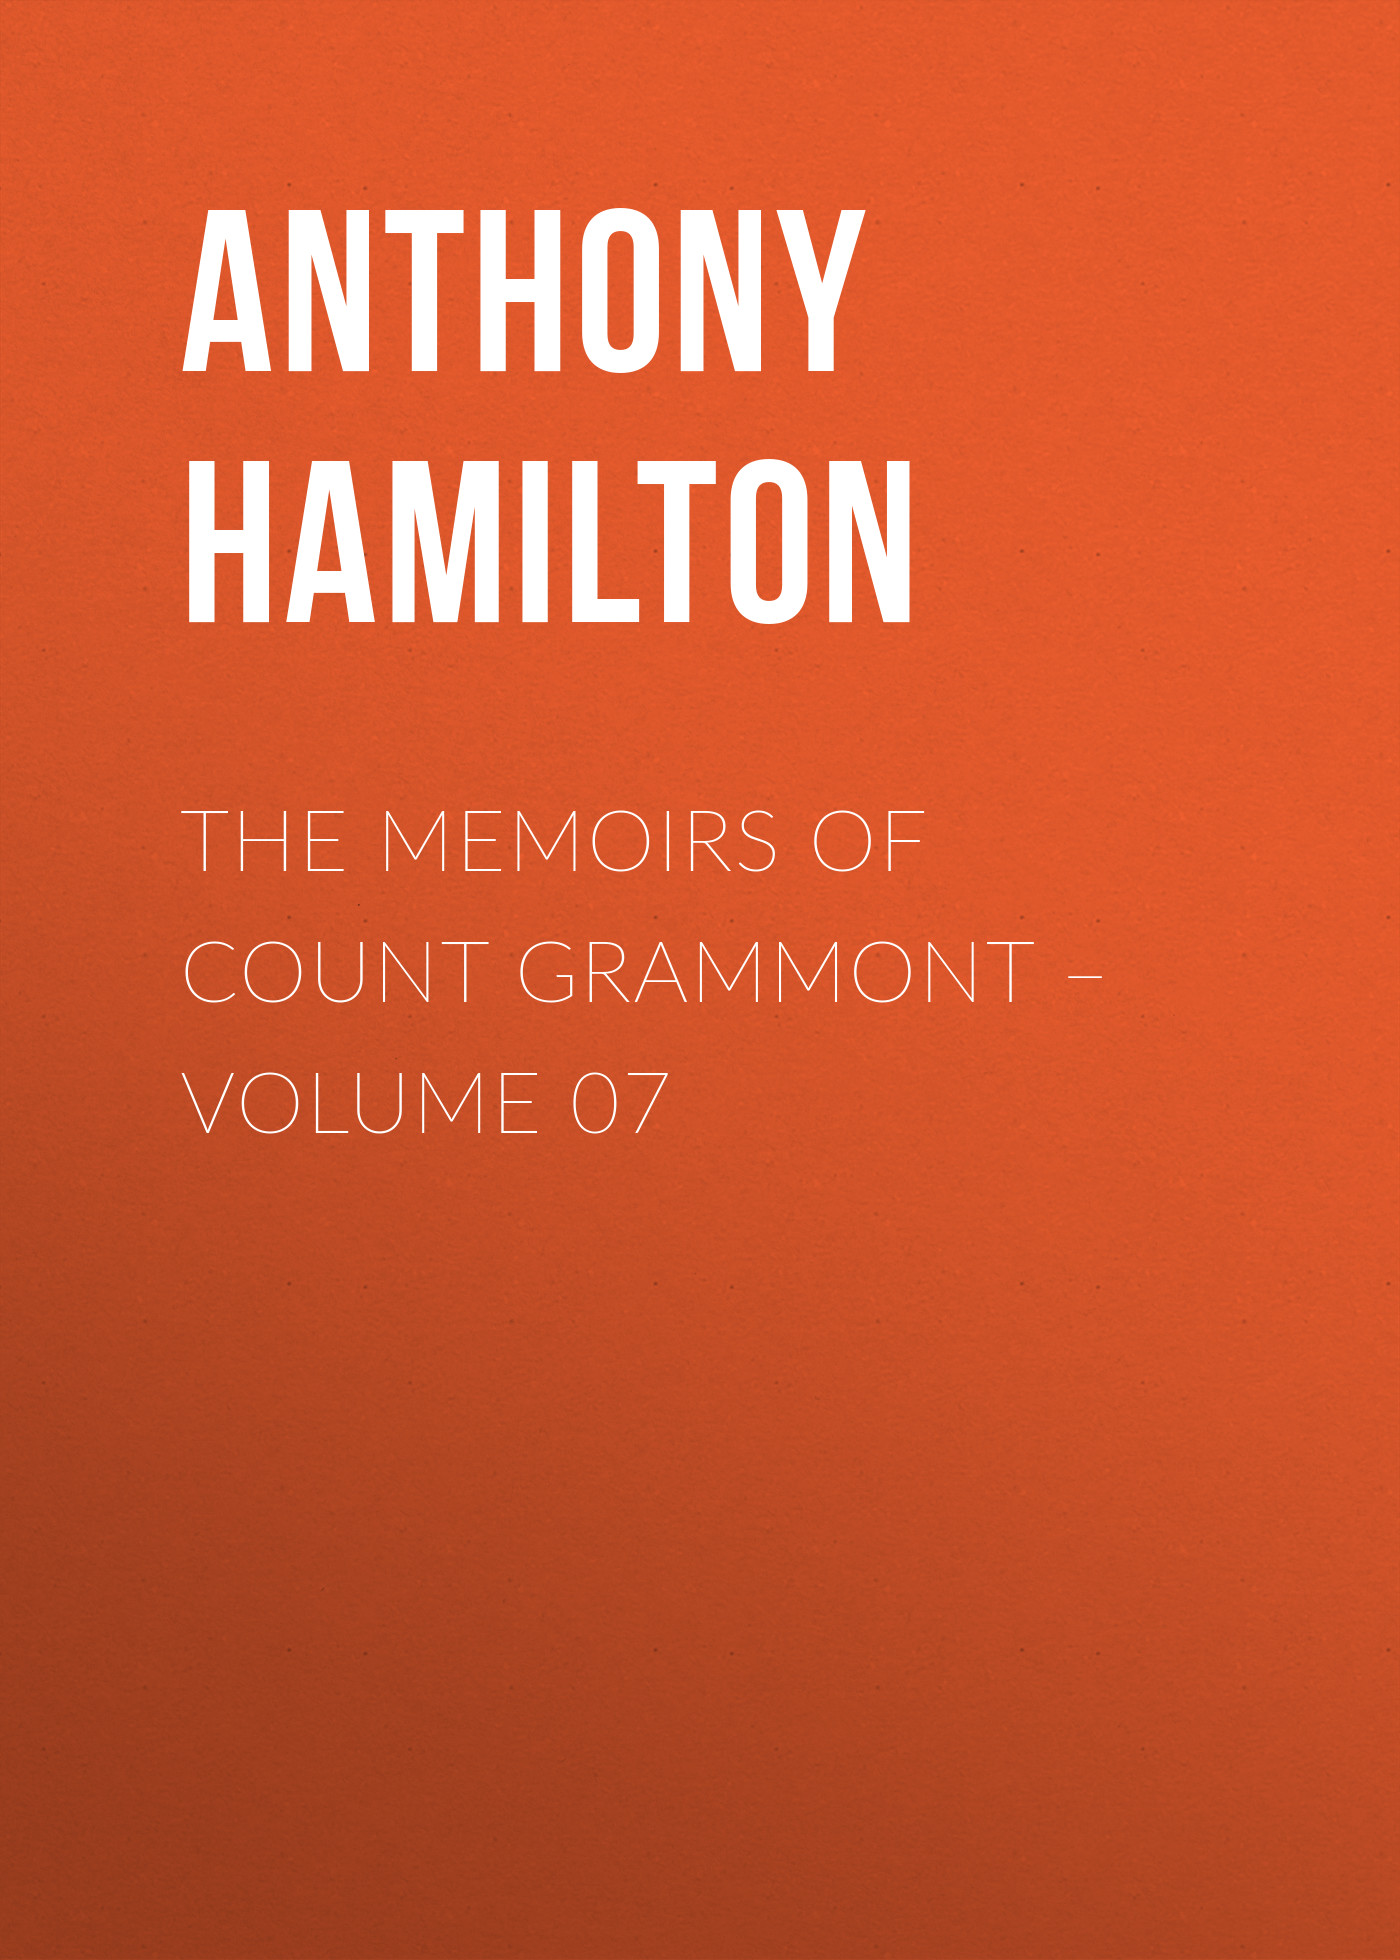 Anthony Hamilton The Memoirs of Count Grammont – Volume 07 anthony hamilton memoirs of count grammont vol 2